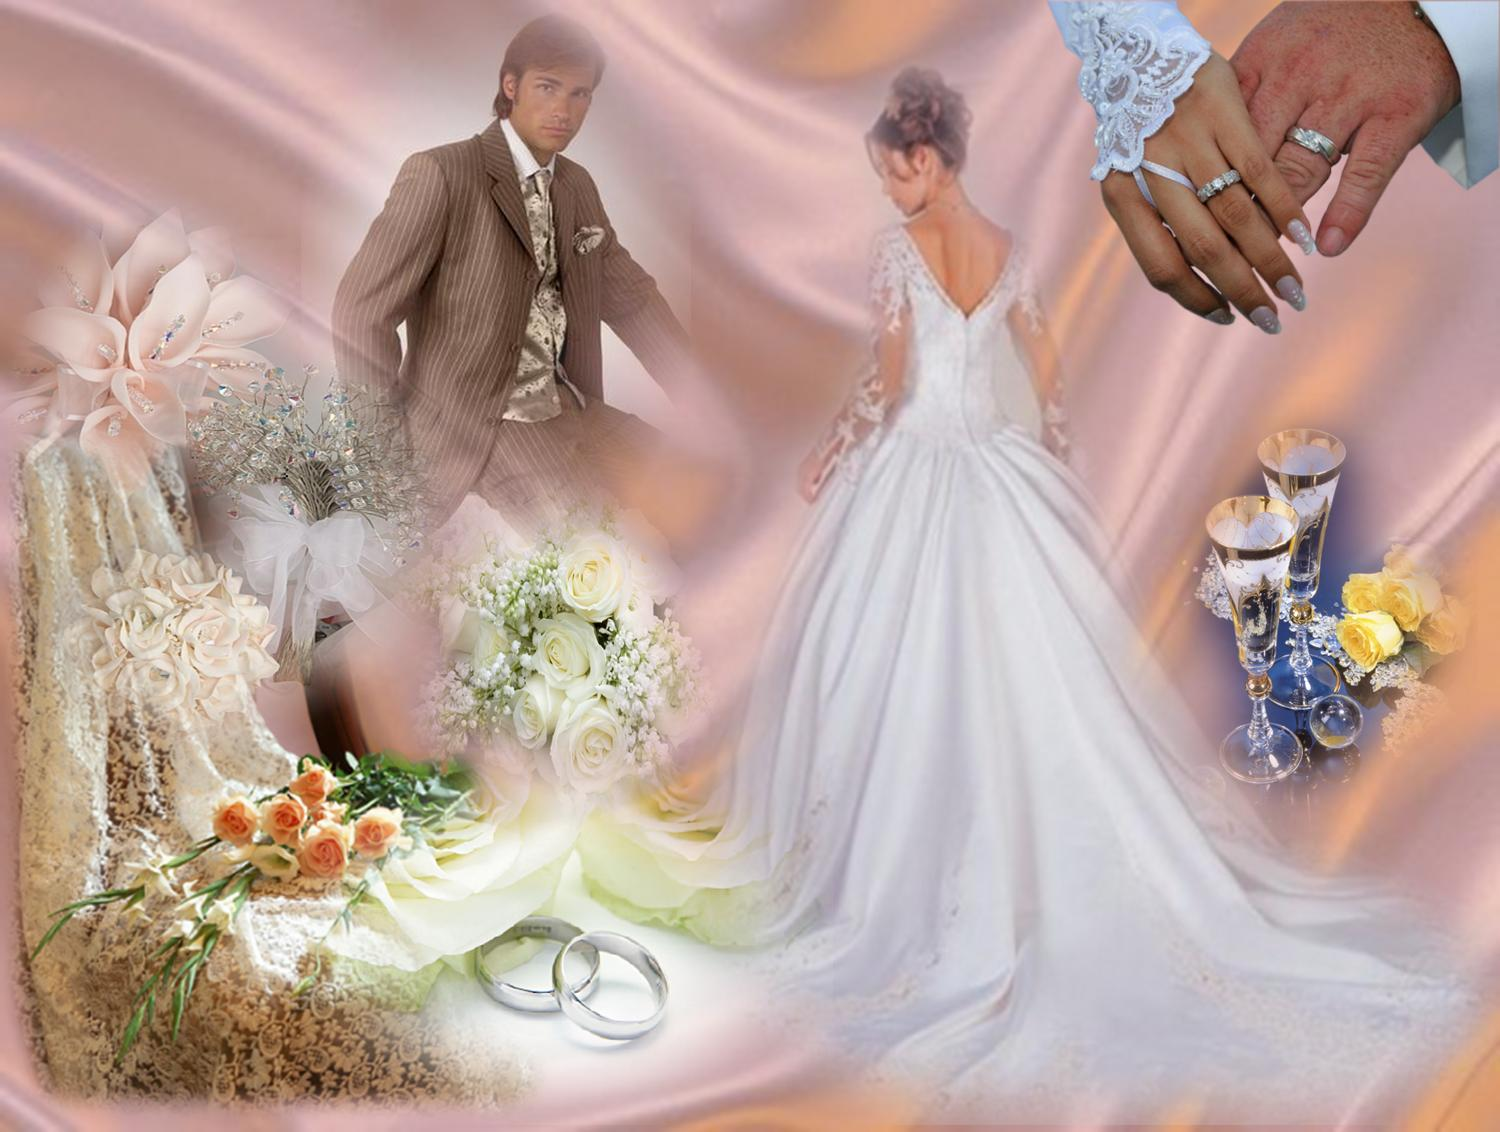 fond ecran univers mariage - photo #40